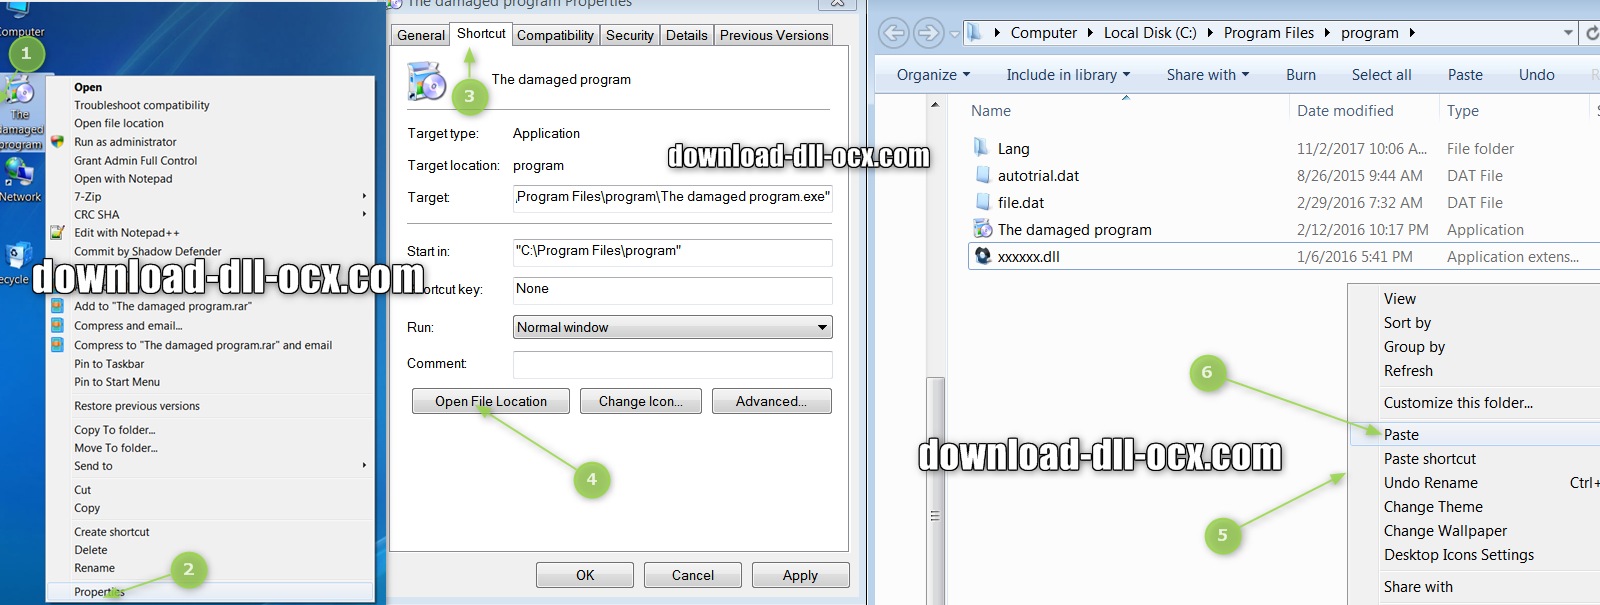 how to install Profmap.dll file? for fix missing